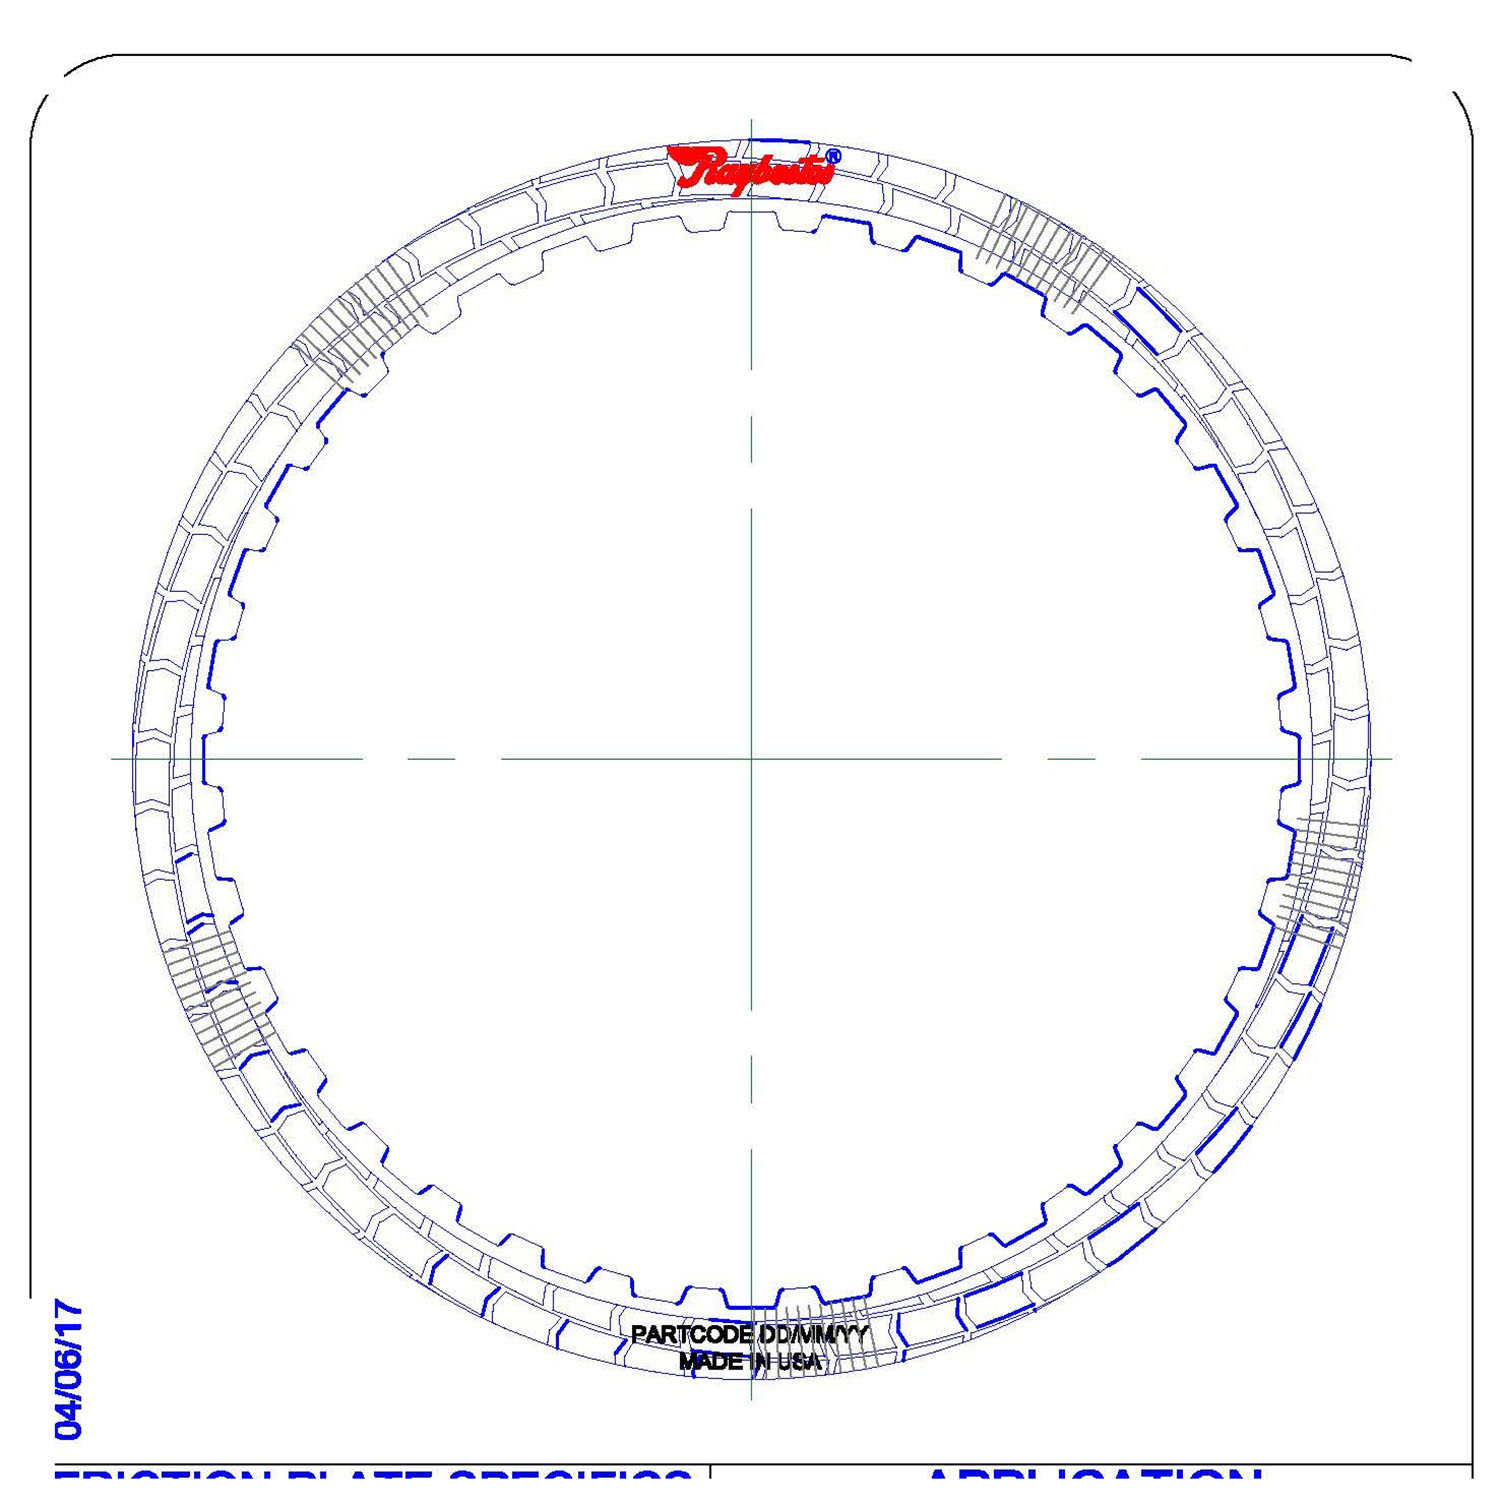 RH560705 | 2009-ON Friction Clutch Plate (HT) Hybrid Technology Low, Reverse Proprietary High Energy (HT) (Waved)